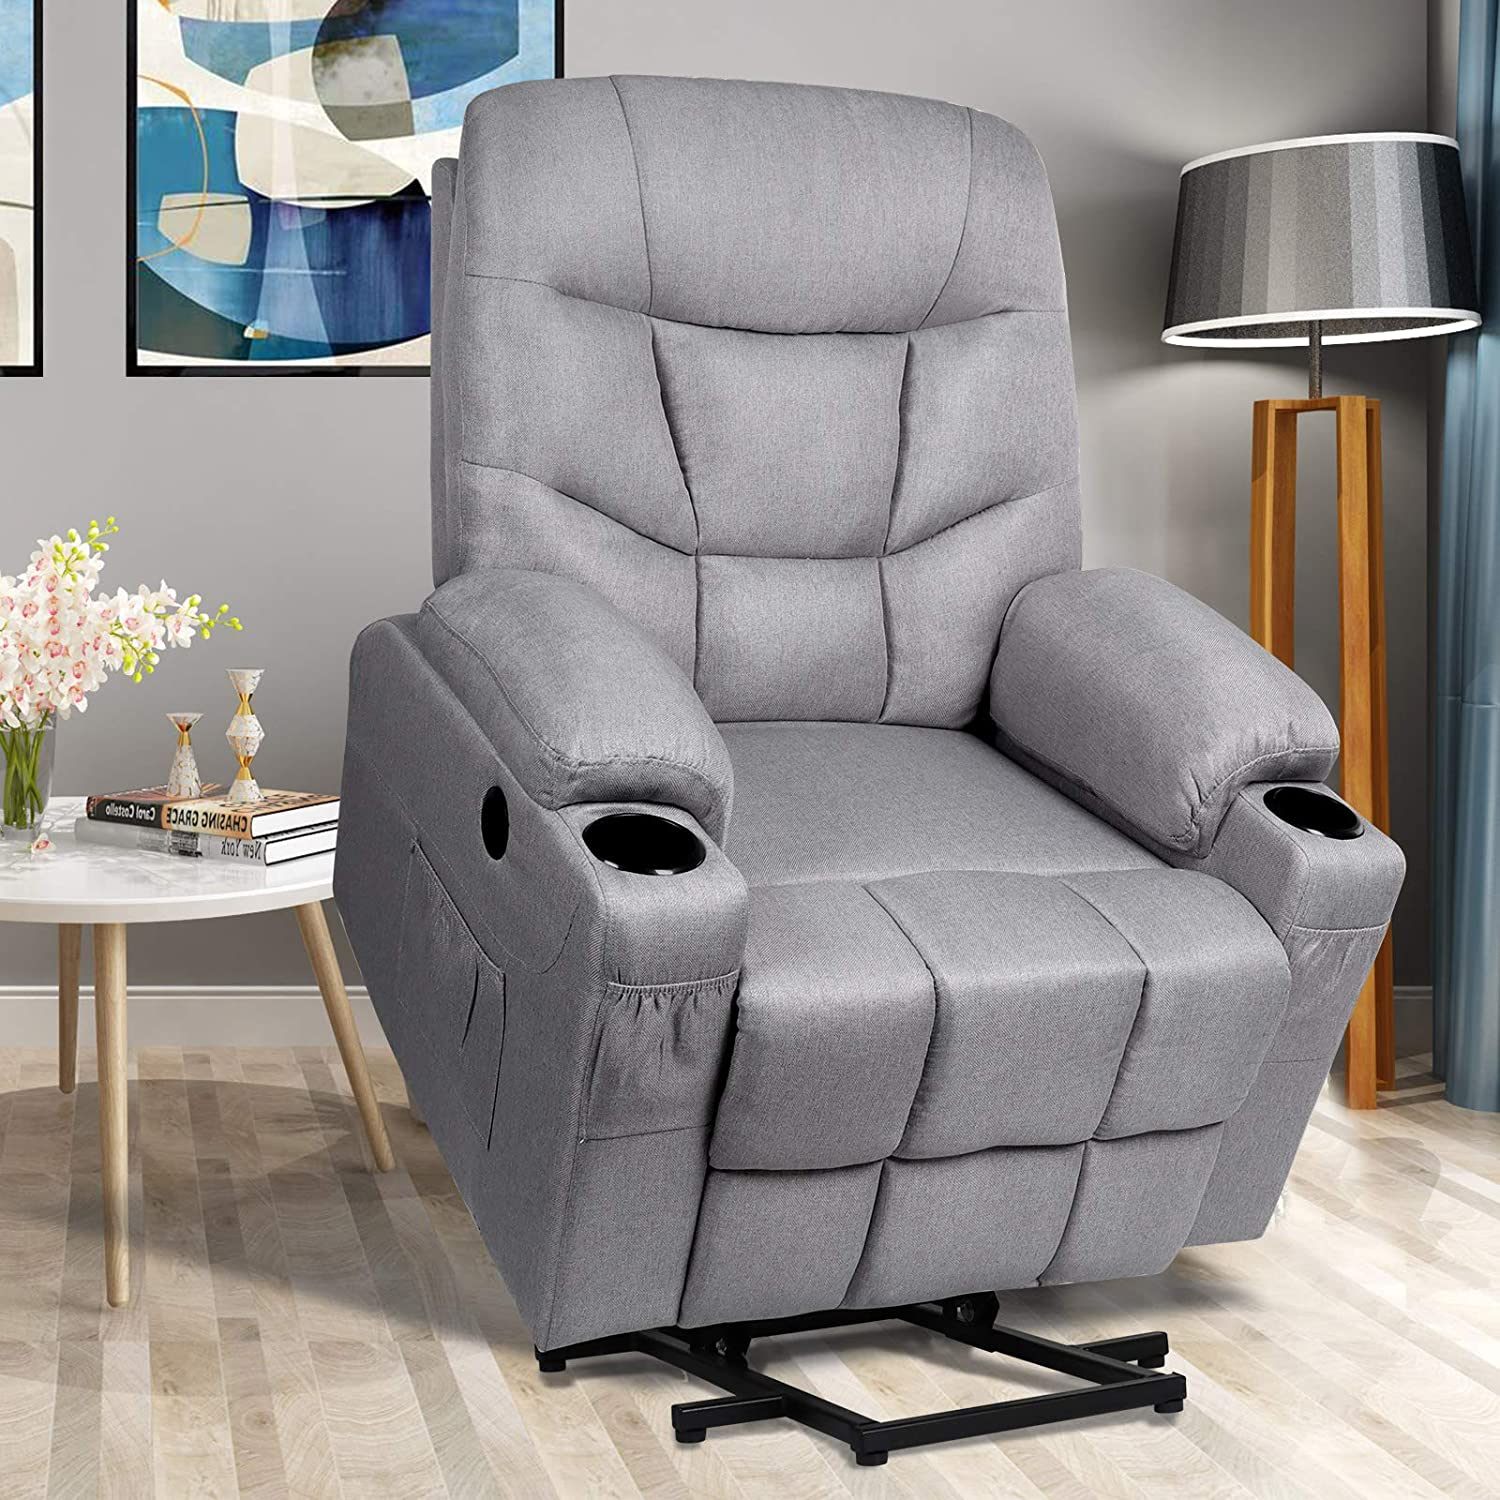 Power Lift Recliner Chair for Elderly Electric Massage Sofa with Heated Vibration,Side Pockets,Cup Holders, USB Ports,Massage Remote Control,Fabric Home Theater Seat Living Room Reclining Bed, Grey